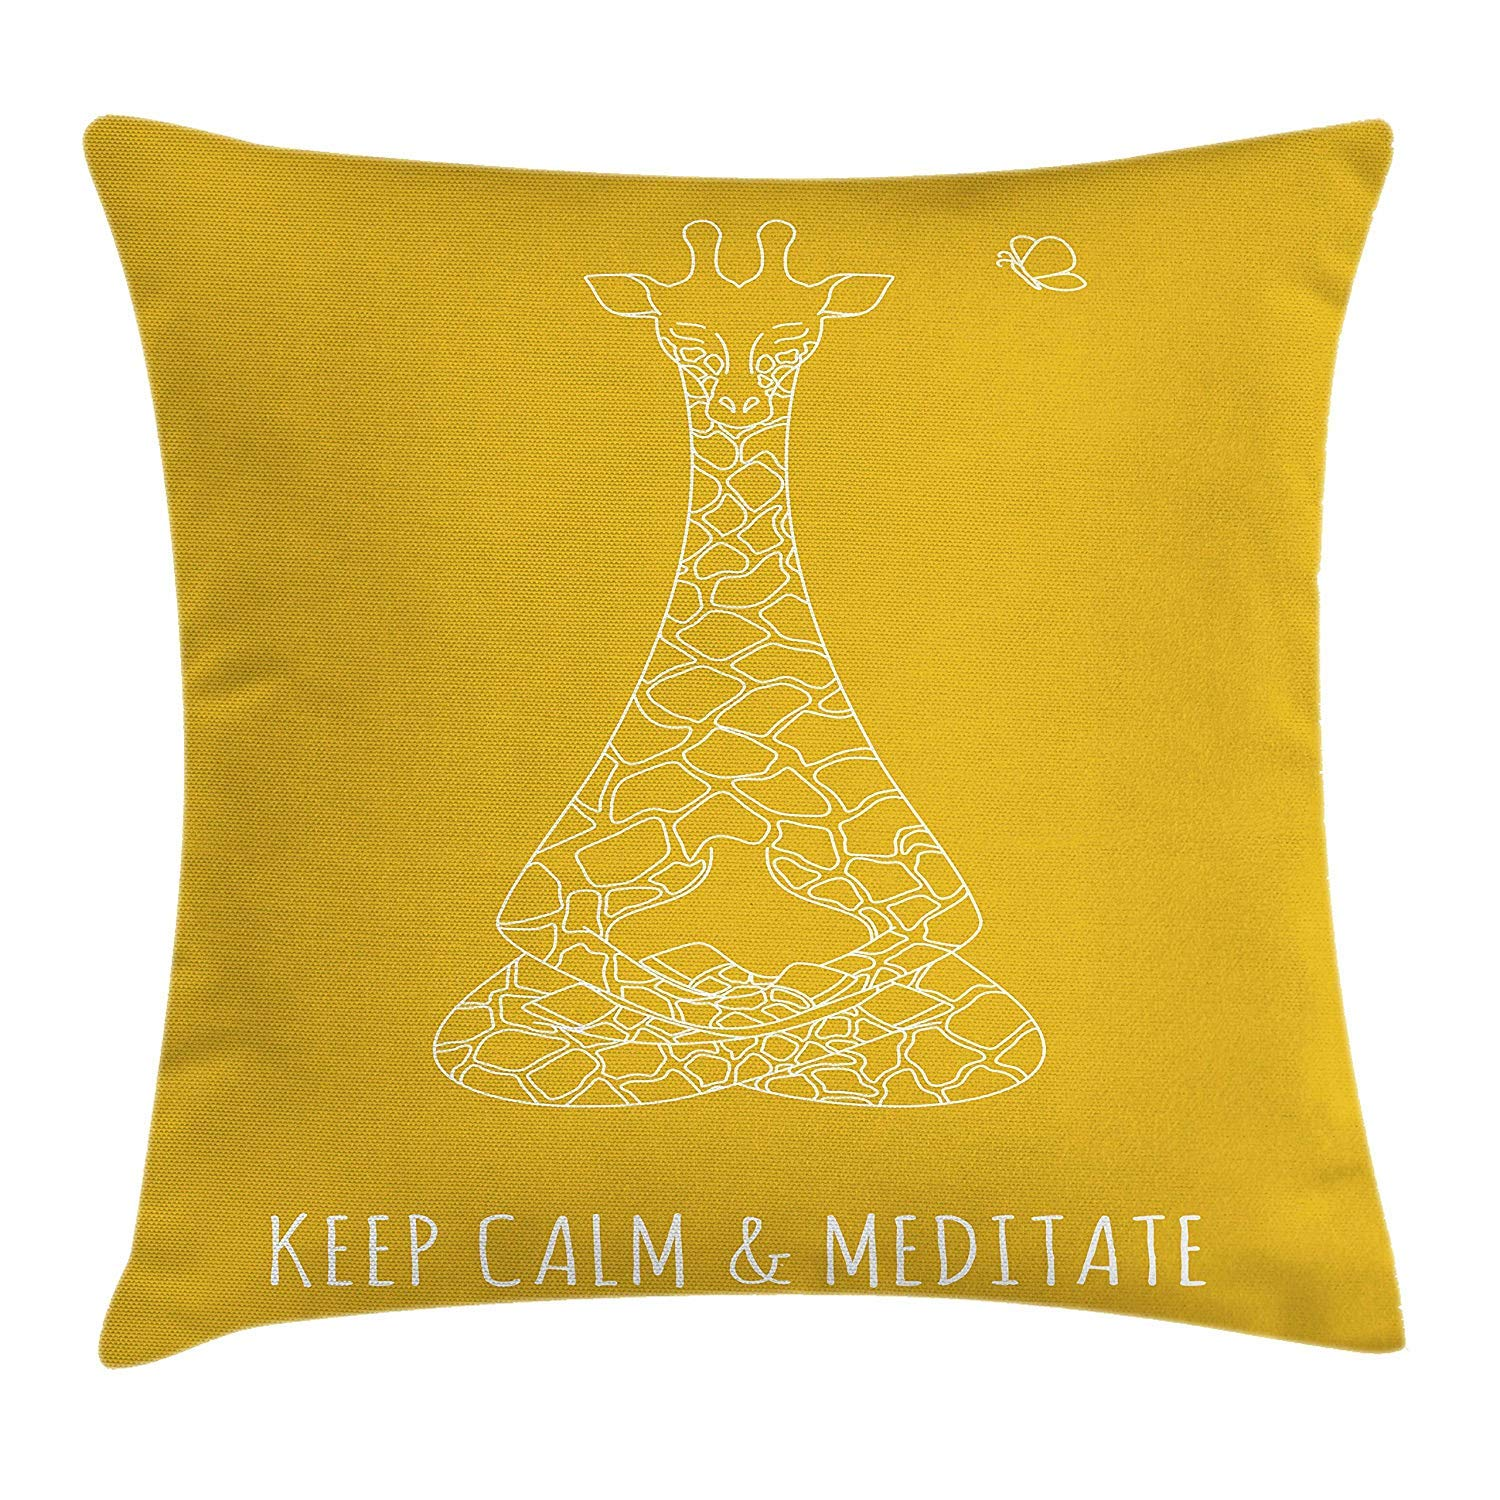 Keep Calm Throw Pillow Cushion Cover, Meditative Animals Giraffe in Drawing Style on Yellow with Butterfly, Decorative Square Accent Pillow Case, 18 X 18 inches, Earth Yellow White YVSXO